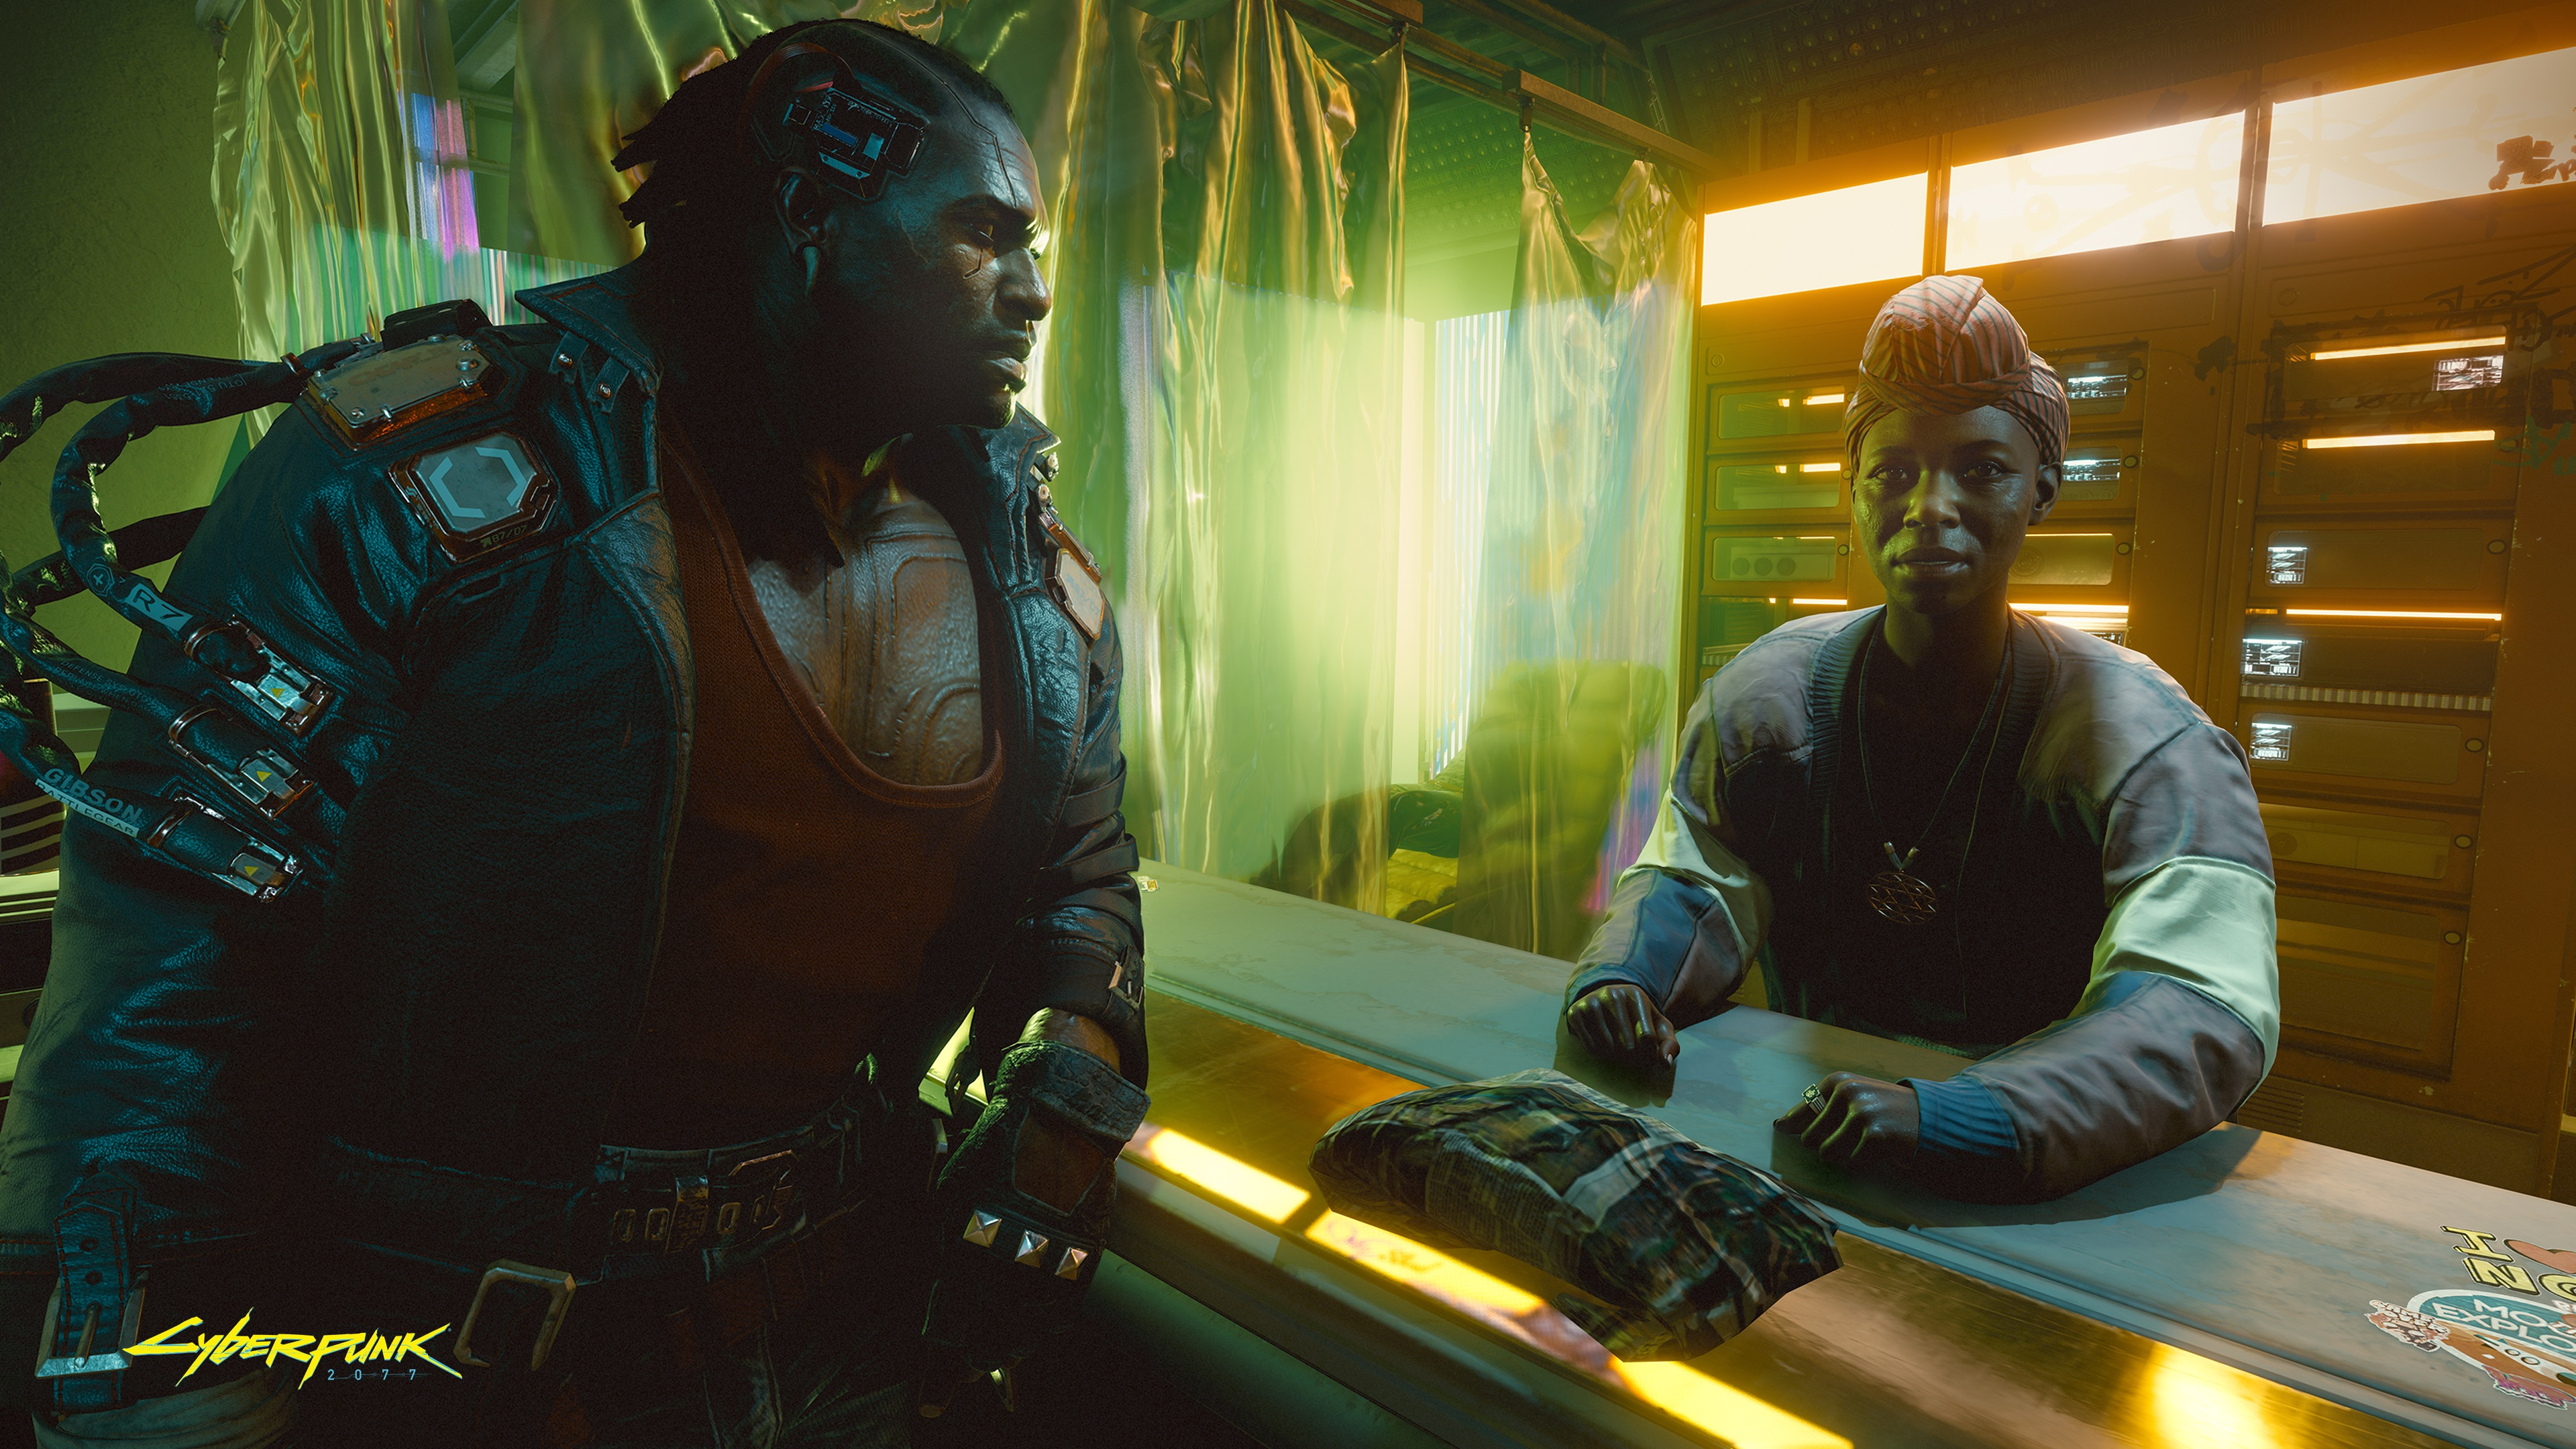 Cyberpunk 2077 : la campagne durera moins longtemps que celle de The Witcher 3